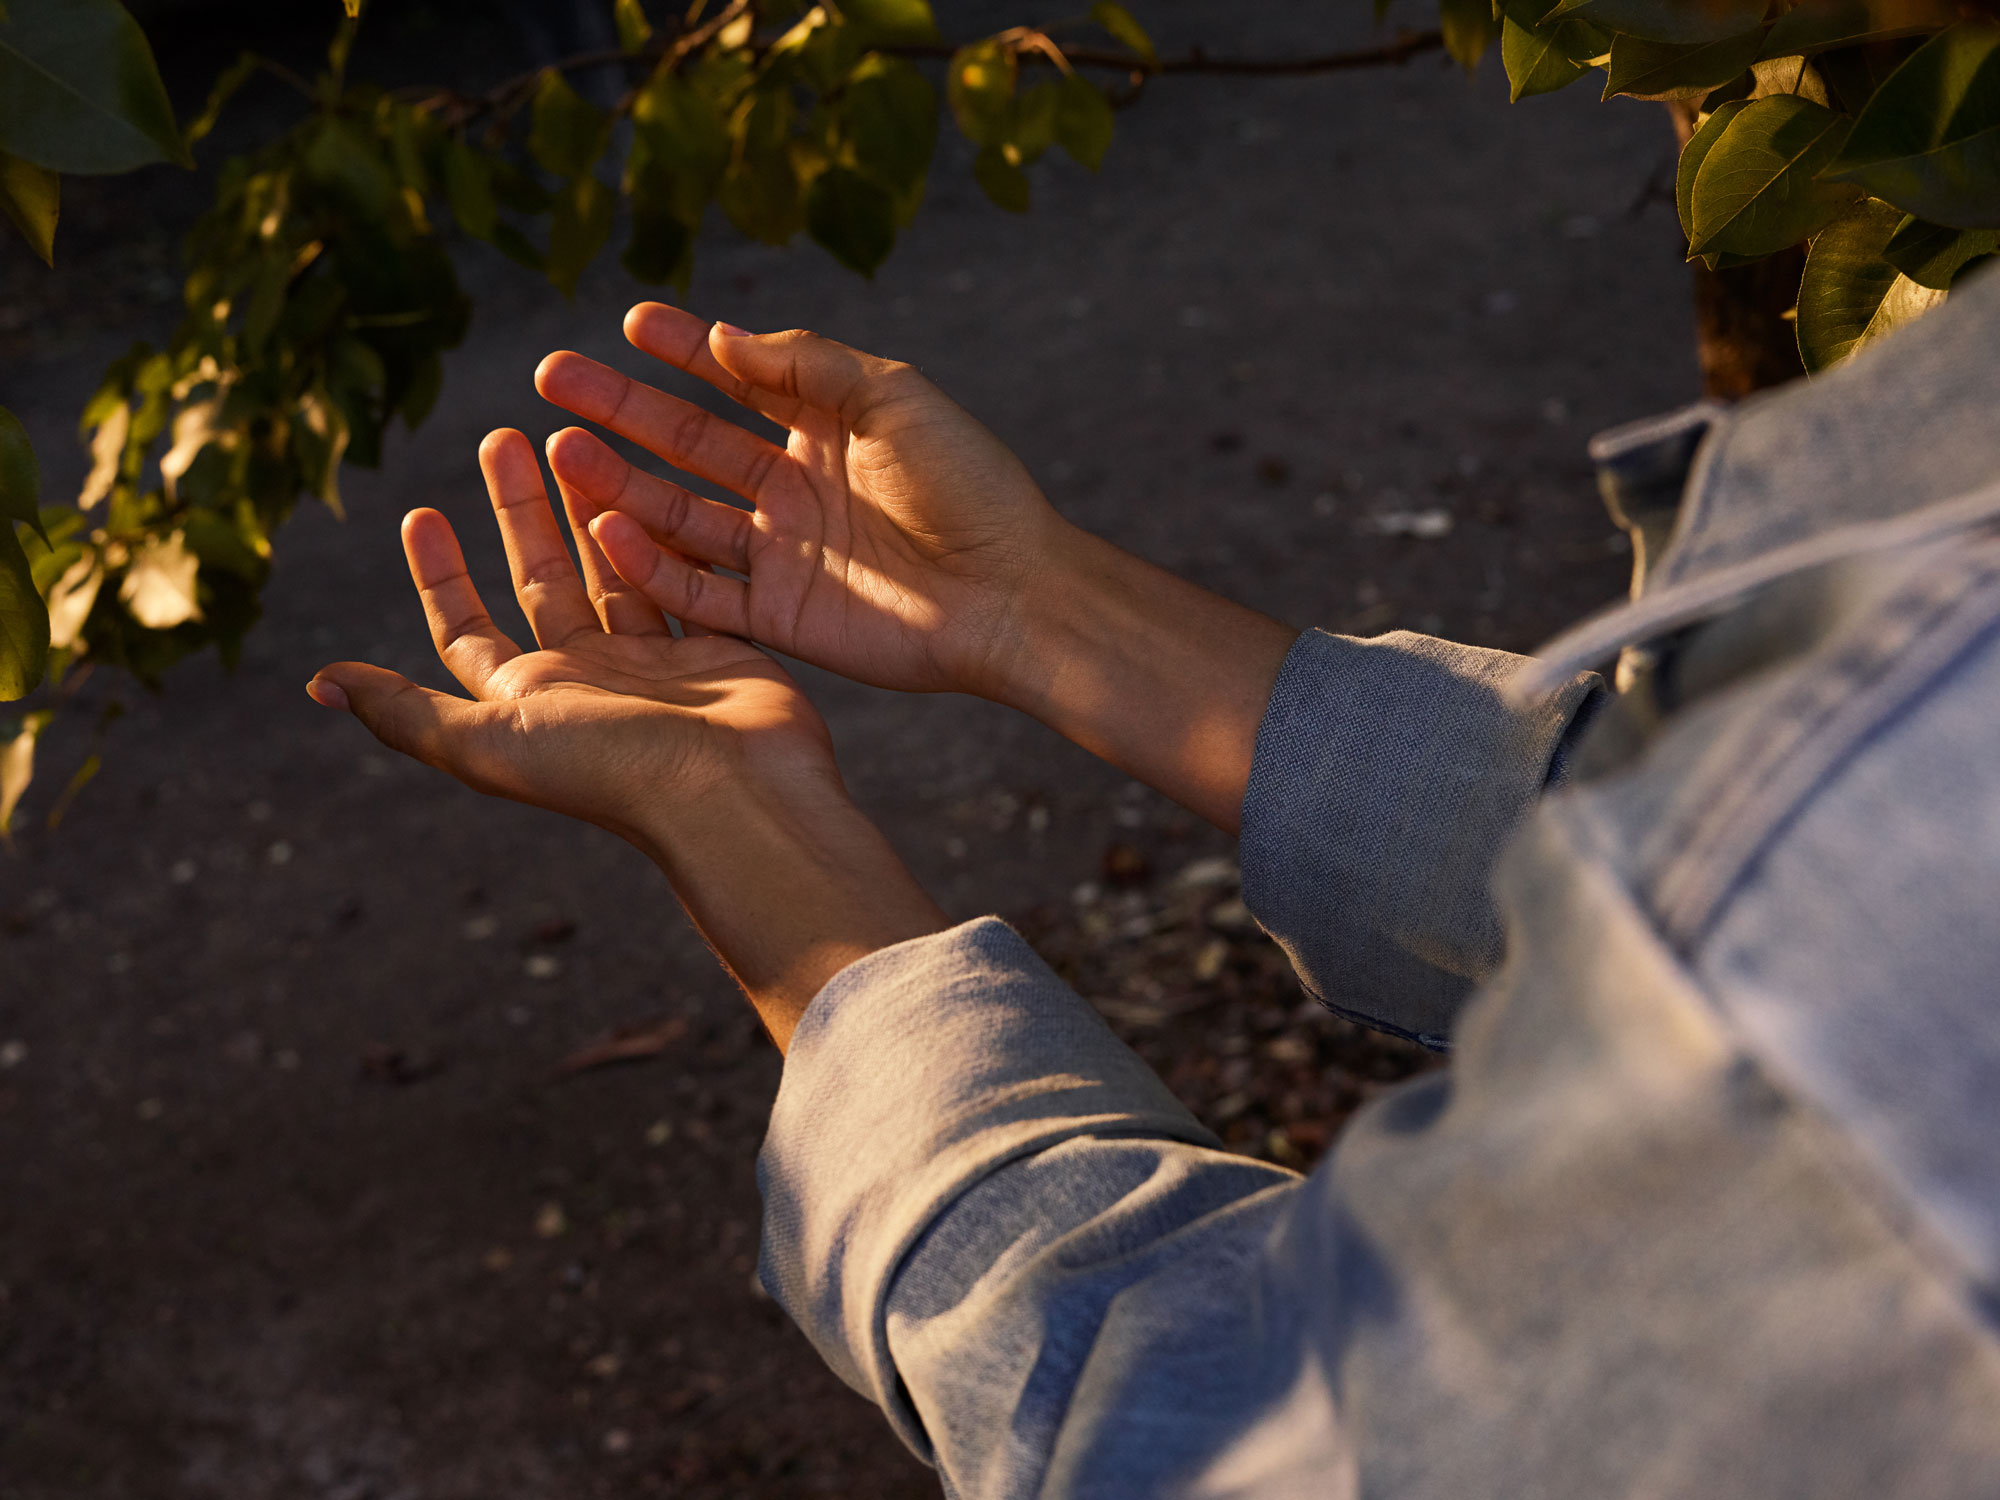 Brand_Orchard_PearTreeHands_3190_RGB_v2.jpg